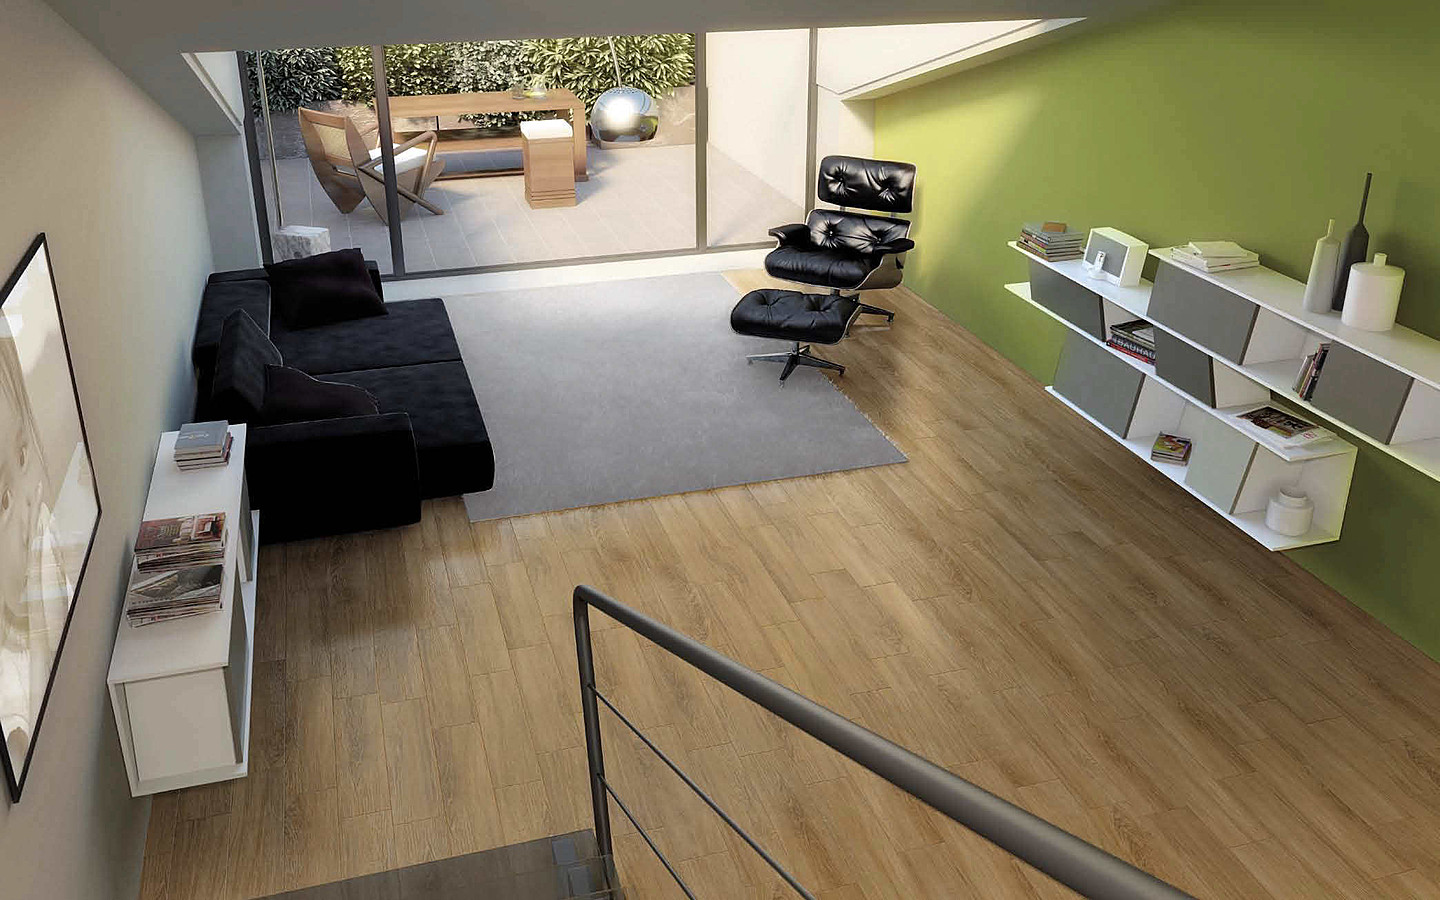 Marca: Easywood Ceramic And Porcelain Tiles By Marca Corona. Tile